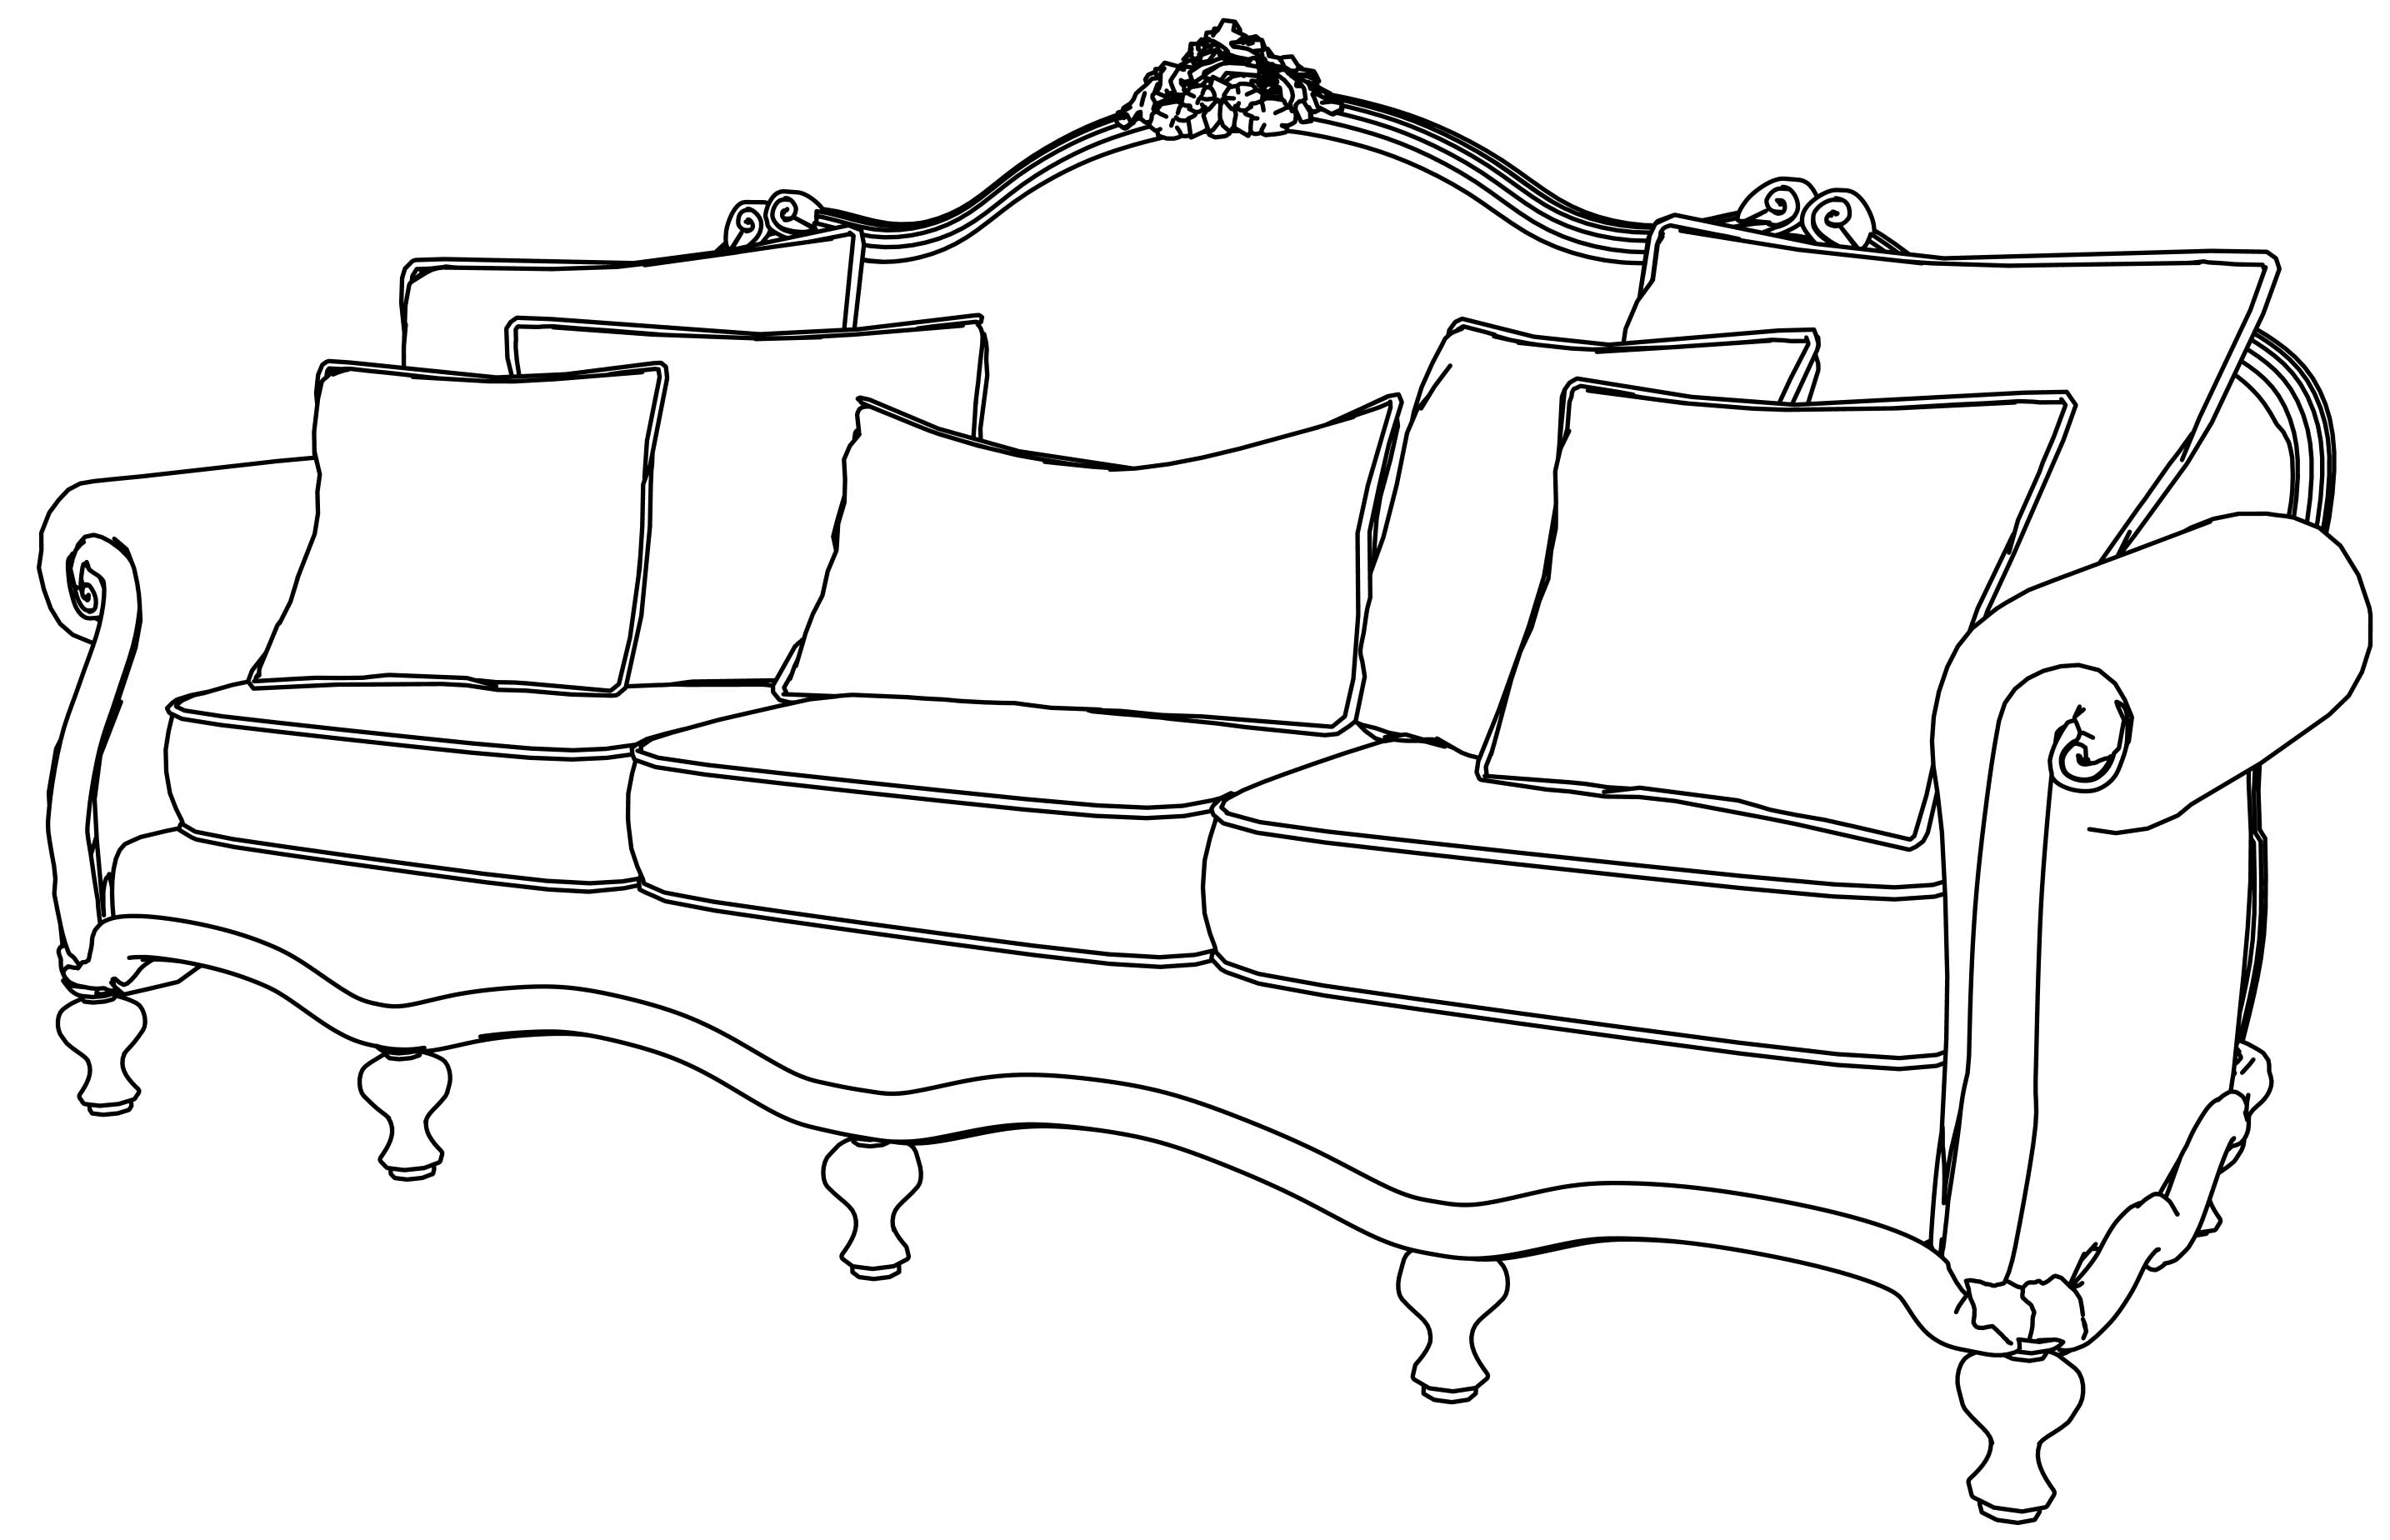 sofa coloring pages - sofa gallery coloring page